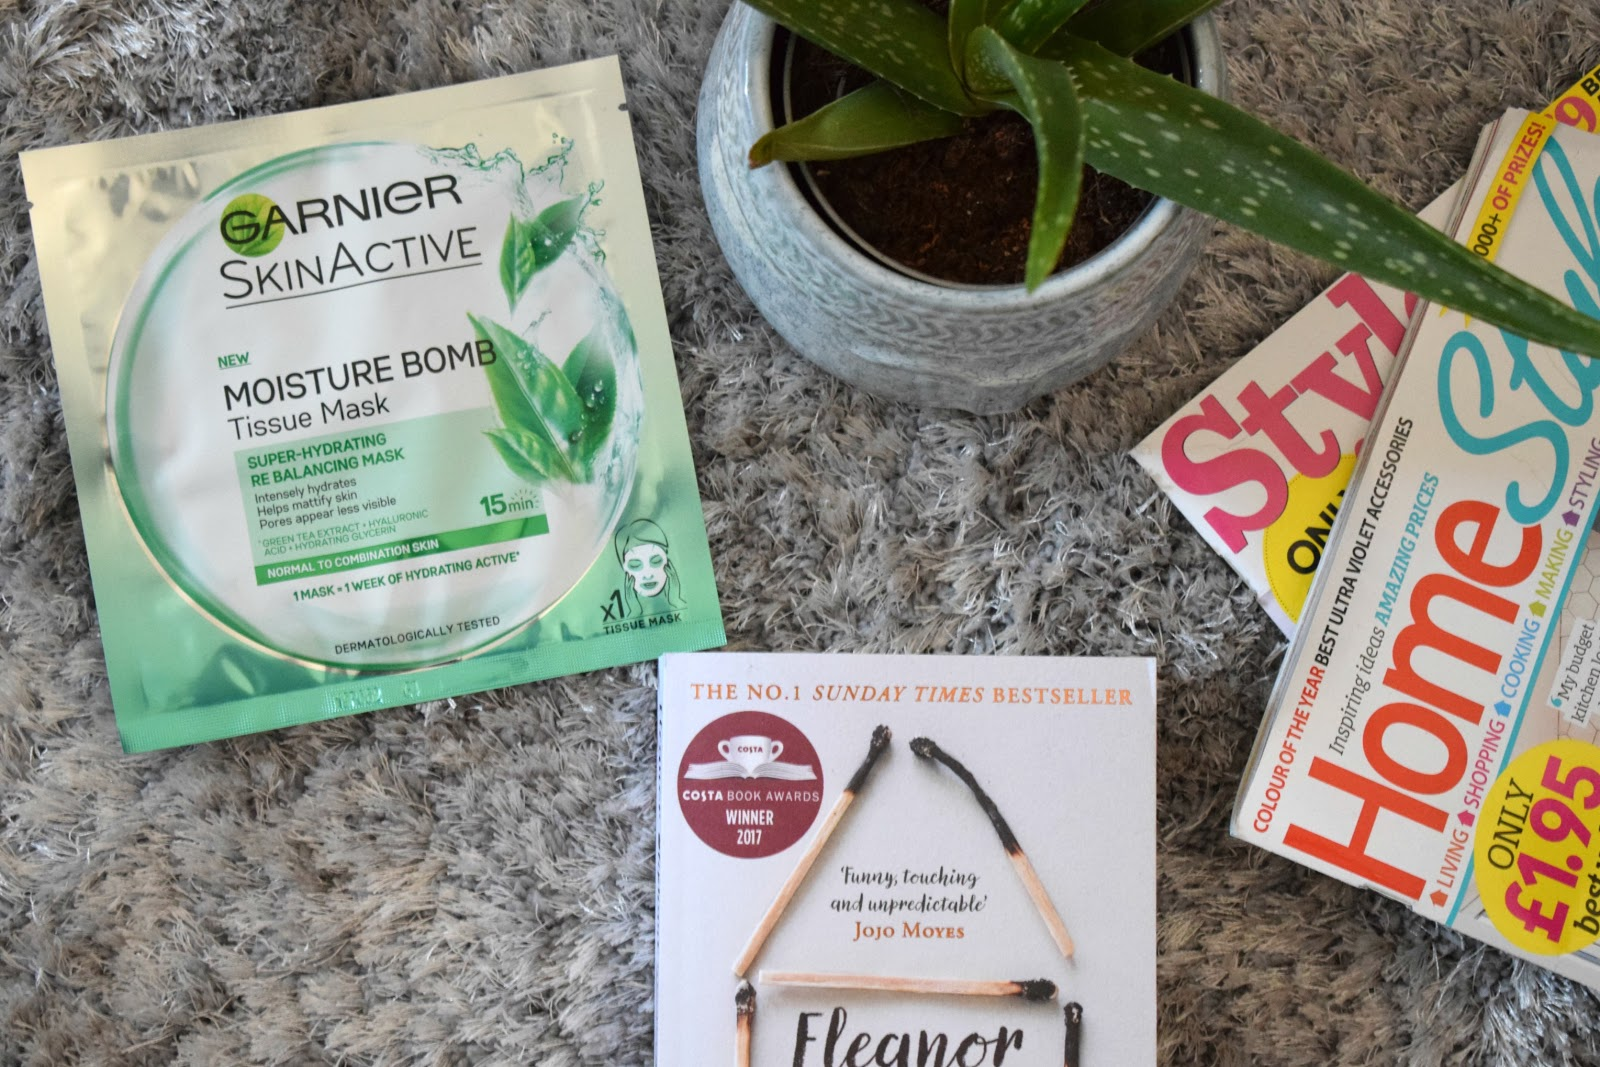 Garnier skinactive moisture bomb green tea tissue mask review